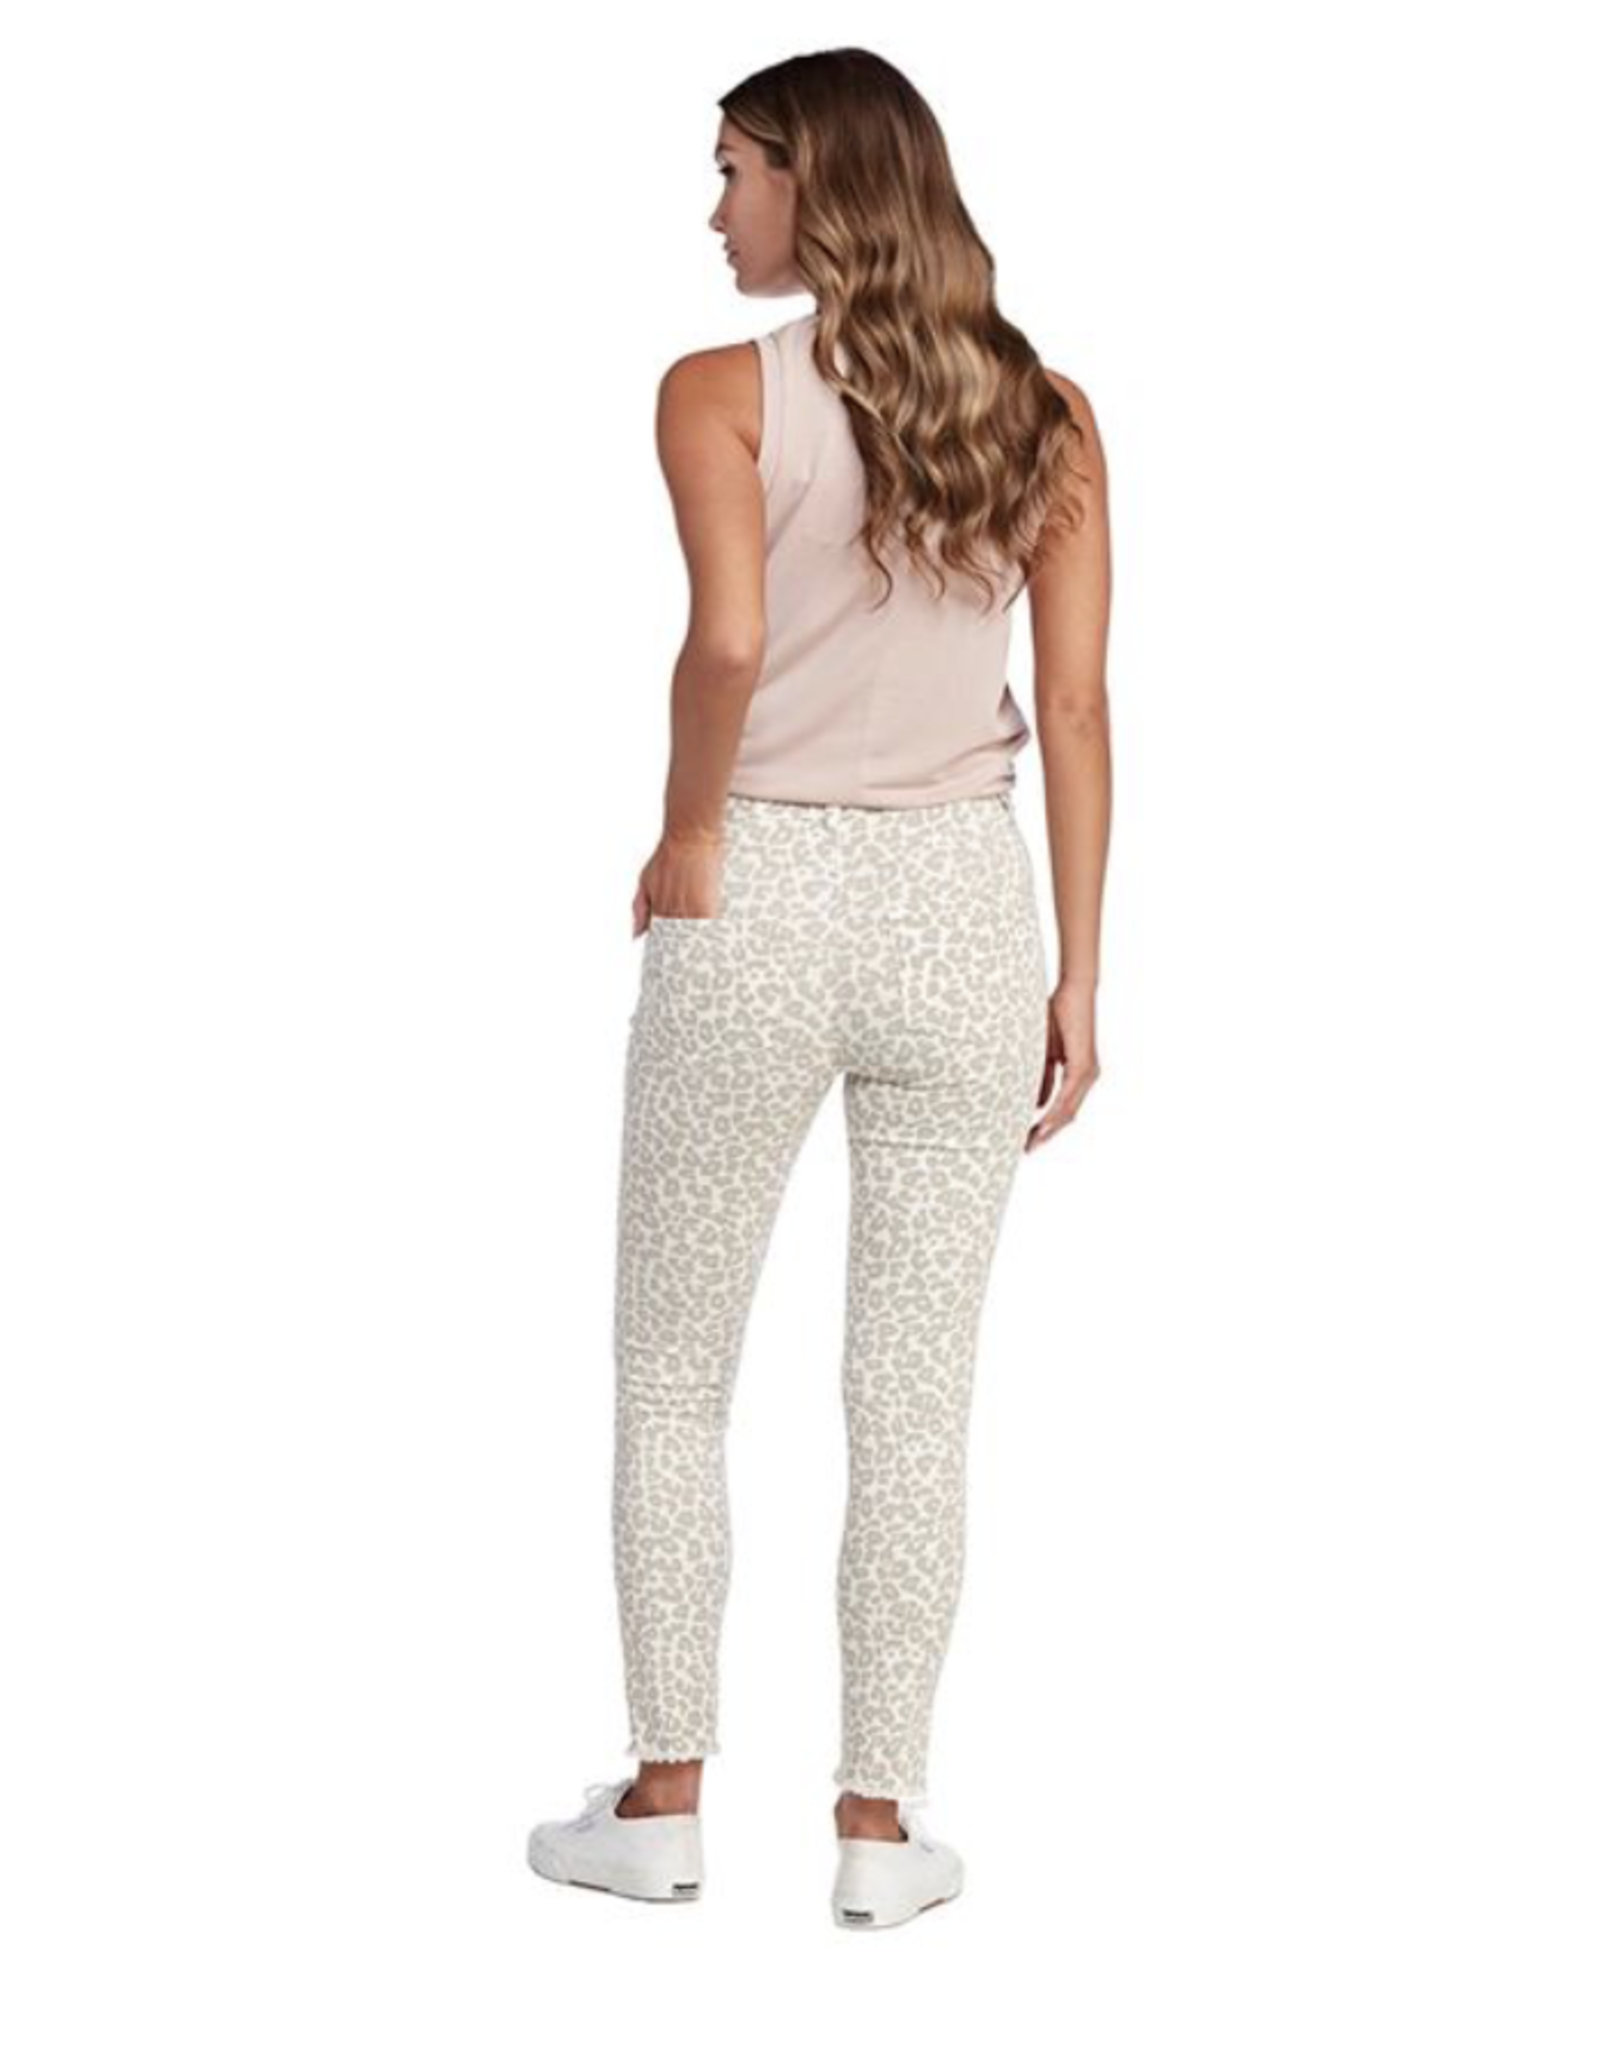 Mud Pie Rory Jeans White Leopard